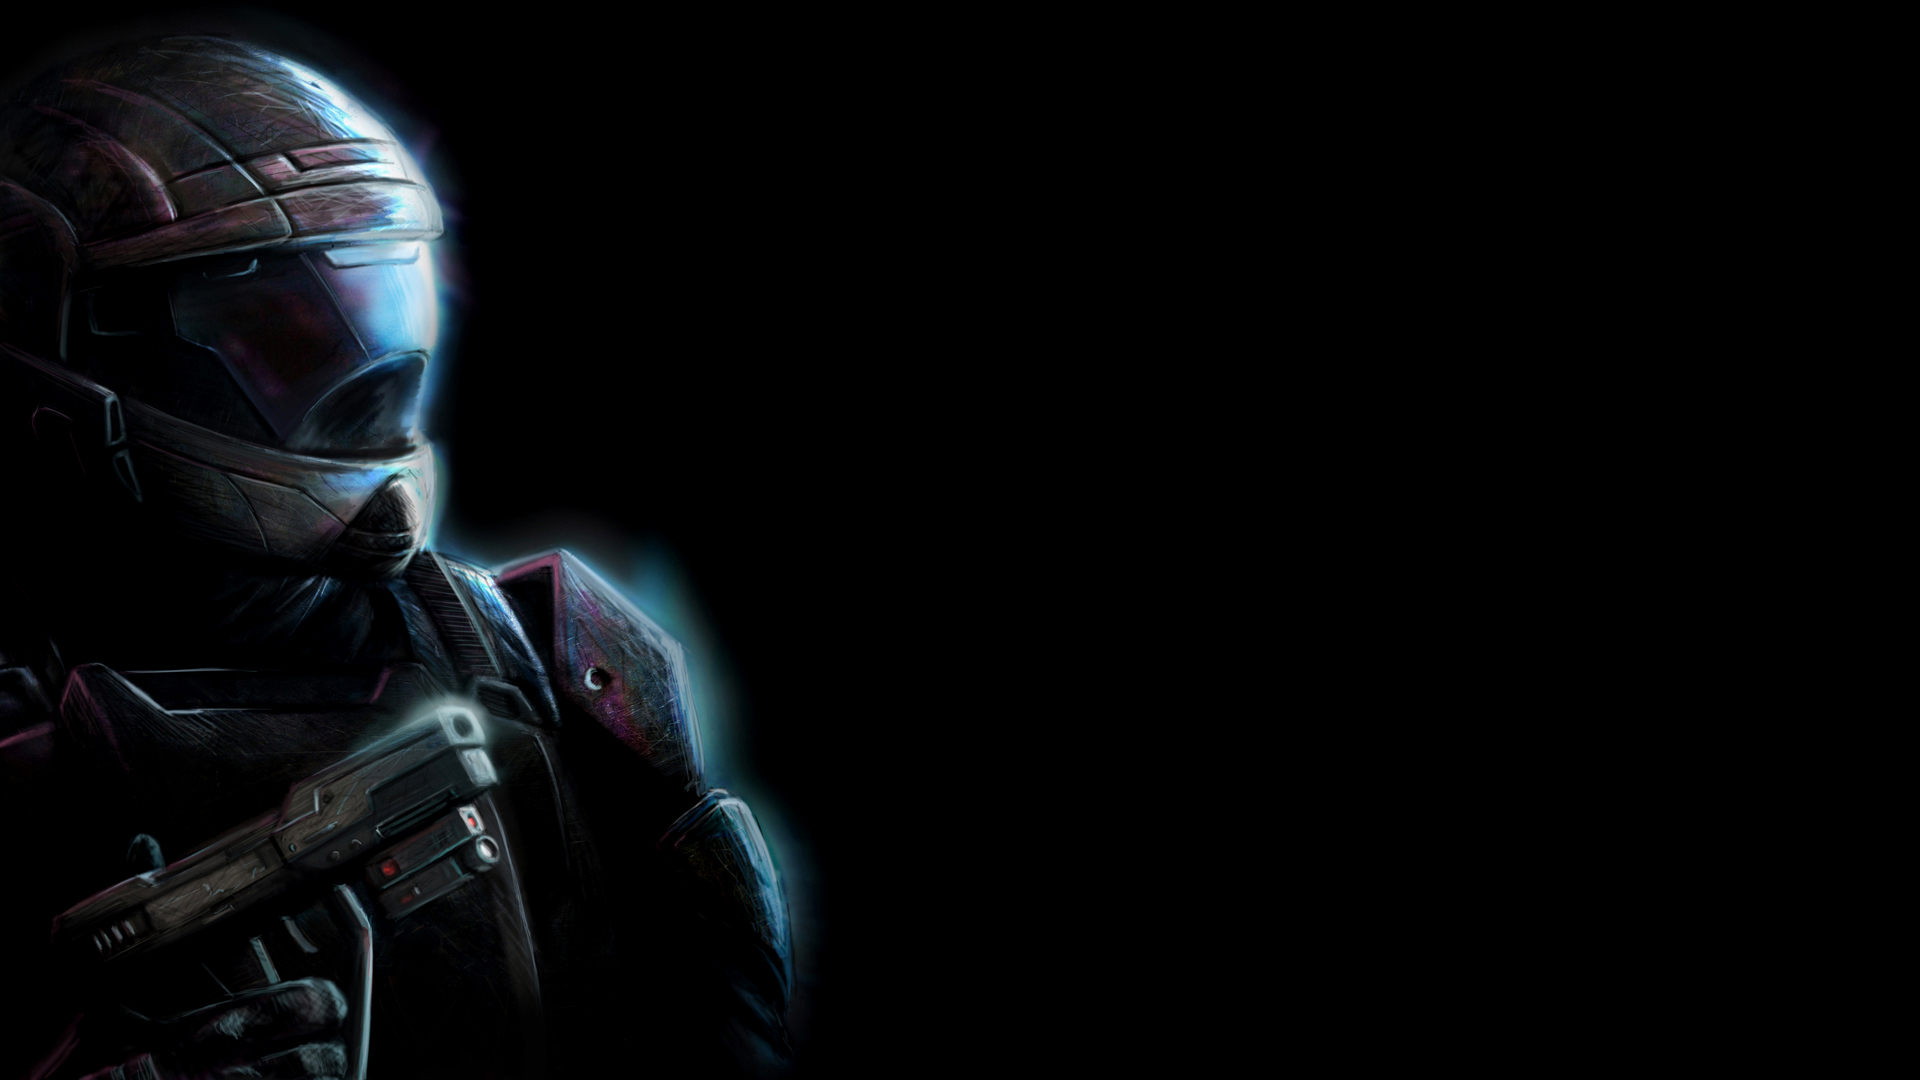 Free Download Odst Wallpaper By Leviwastaken 1920x1080 For Your